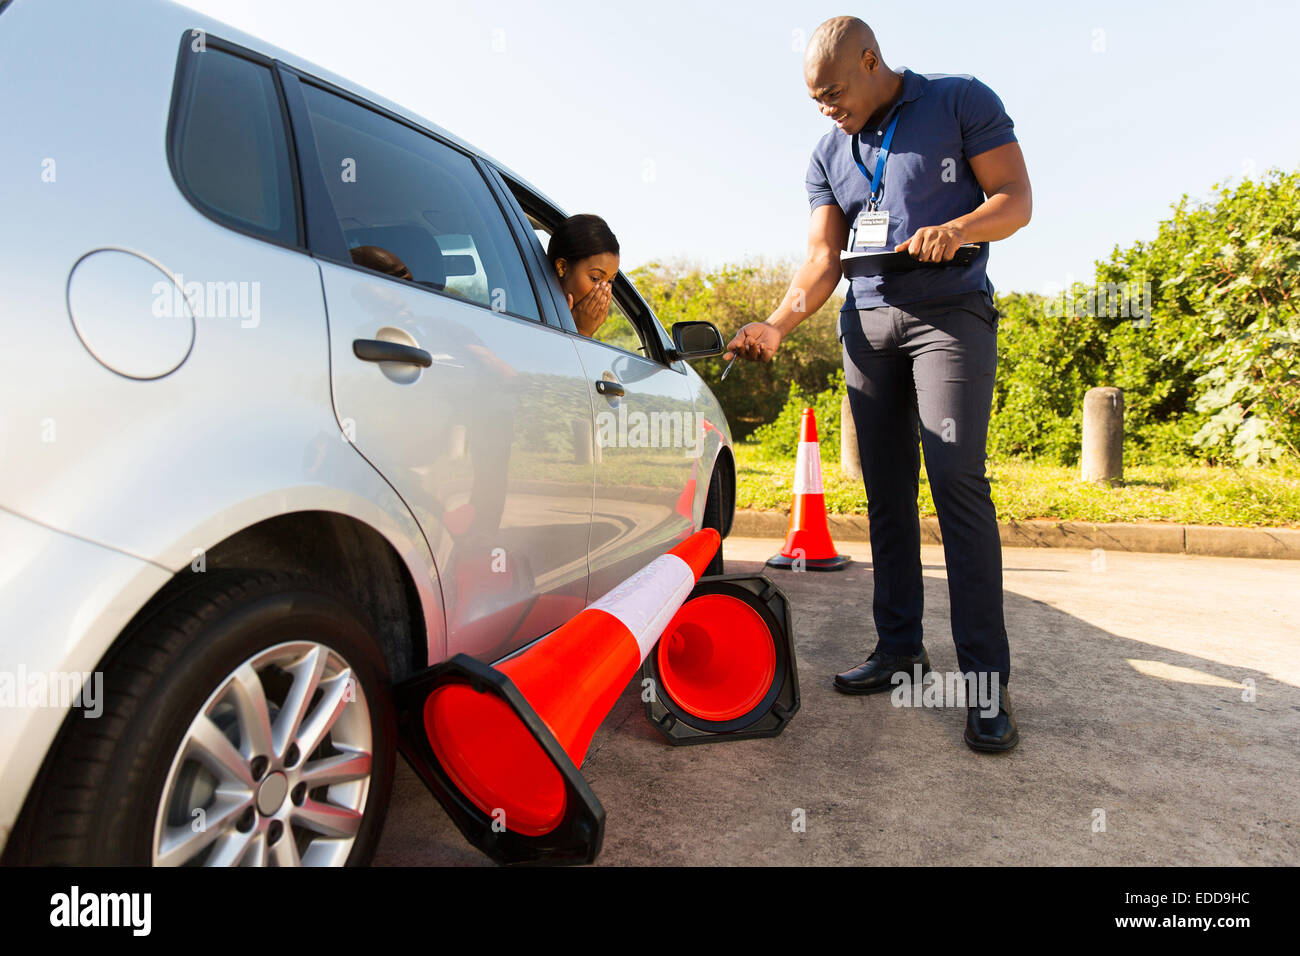 student driver making mistake during driving test, running over traffic cones - Stock Image